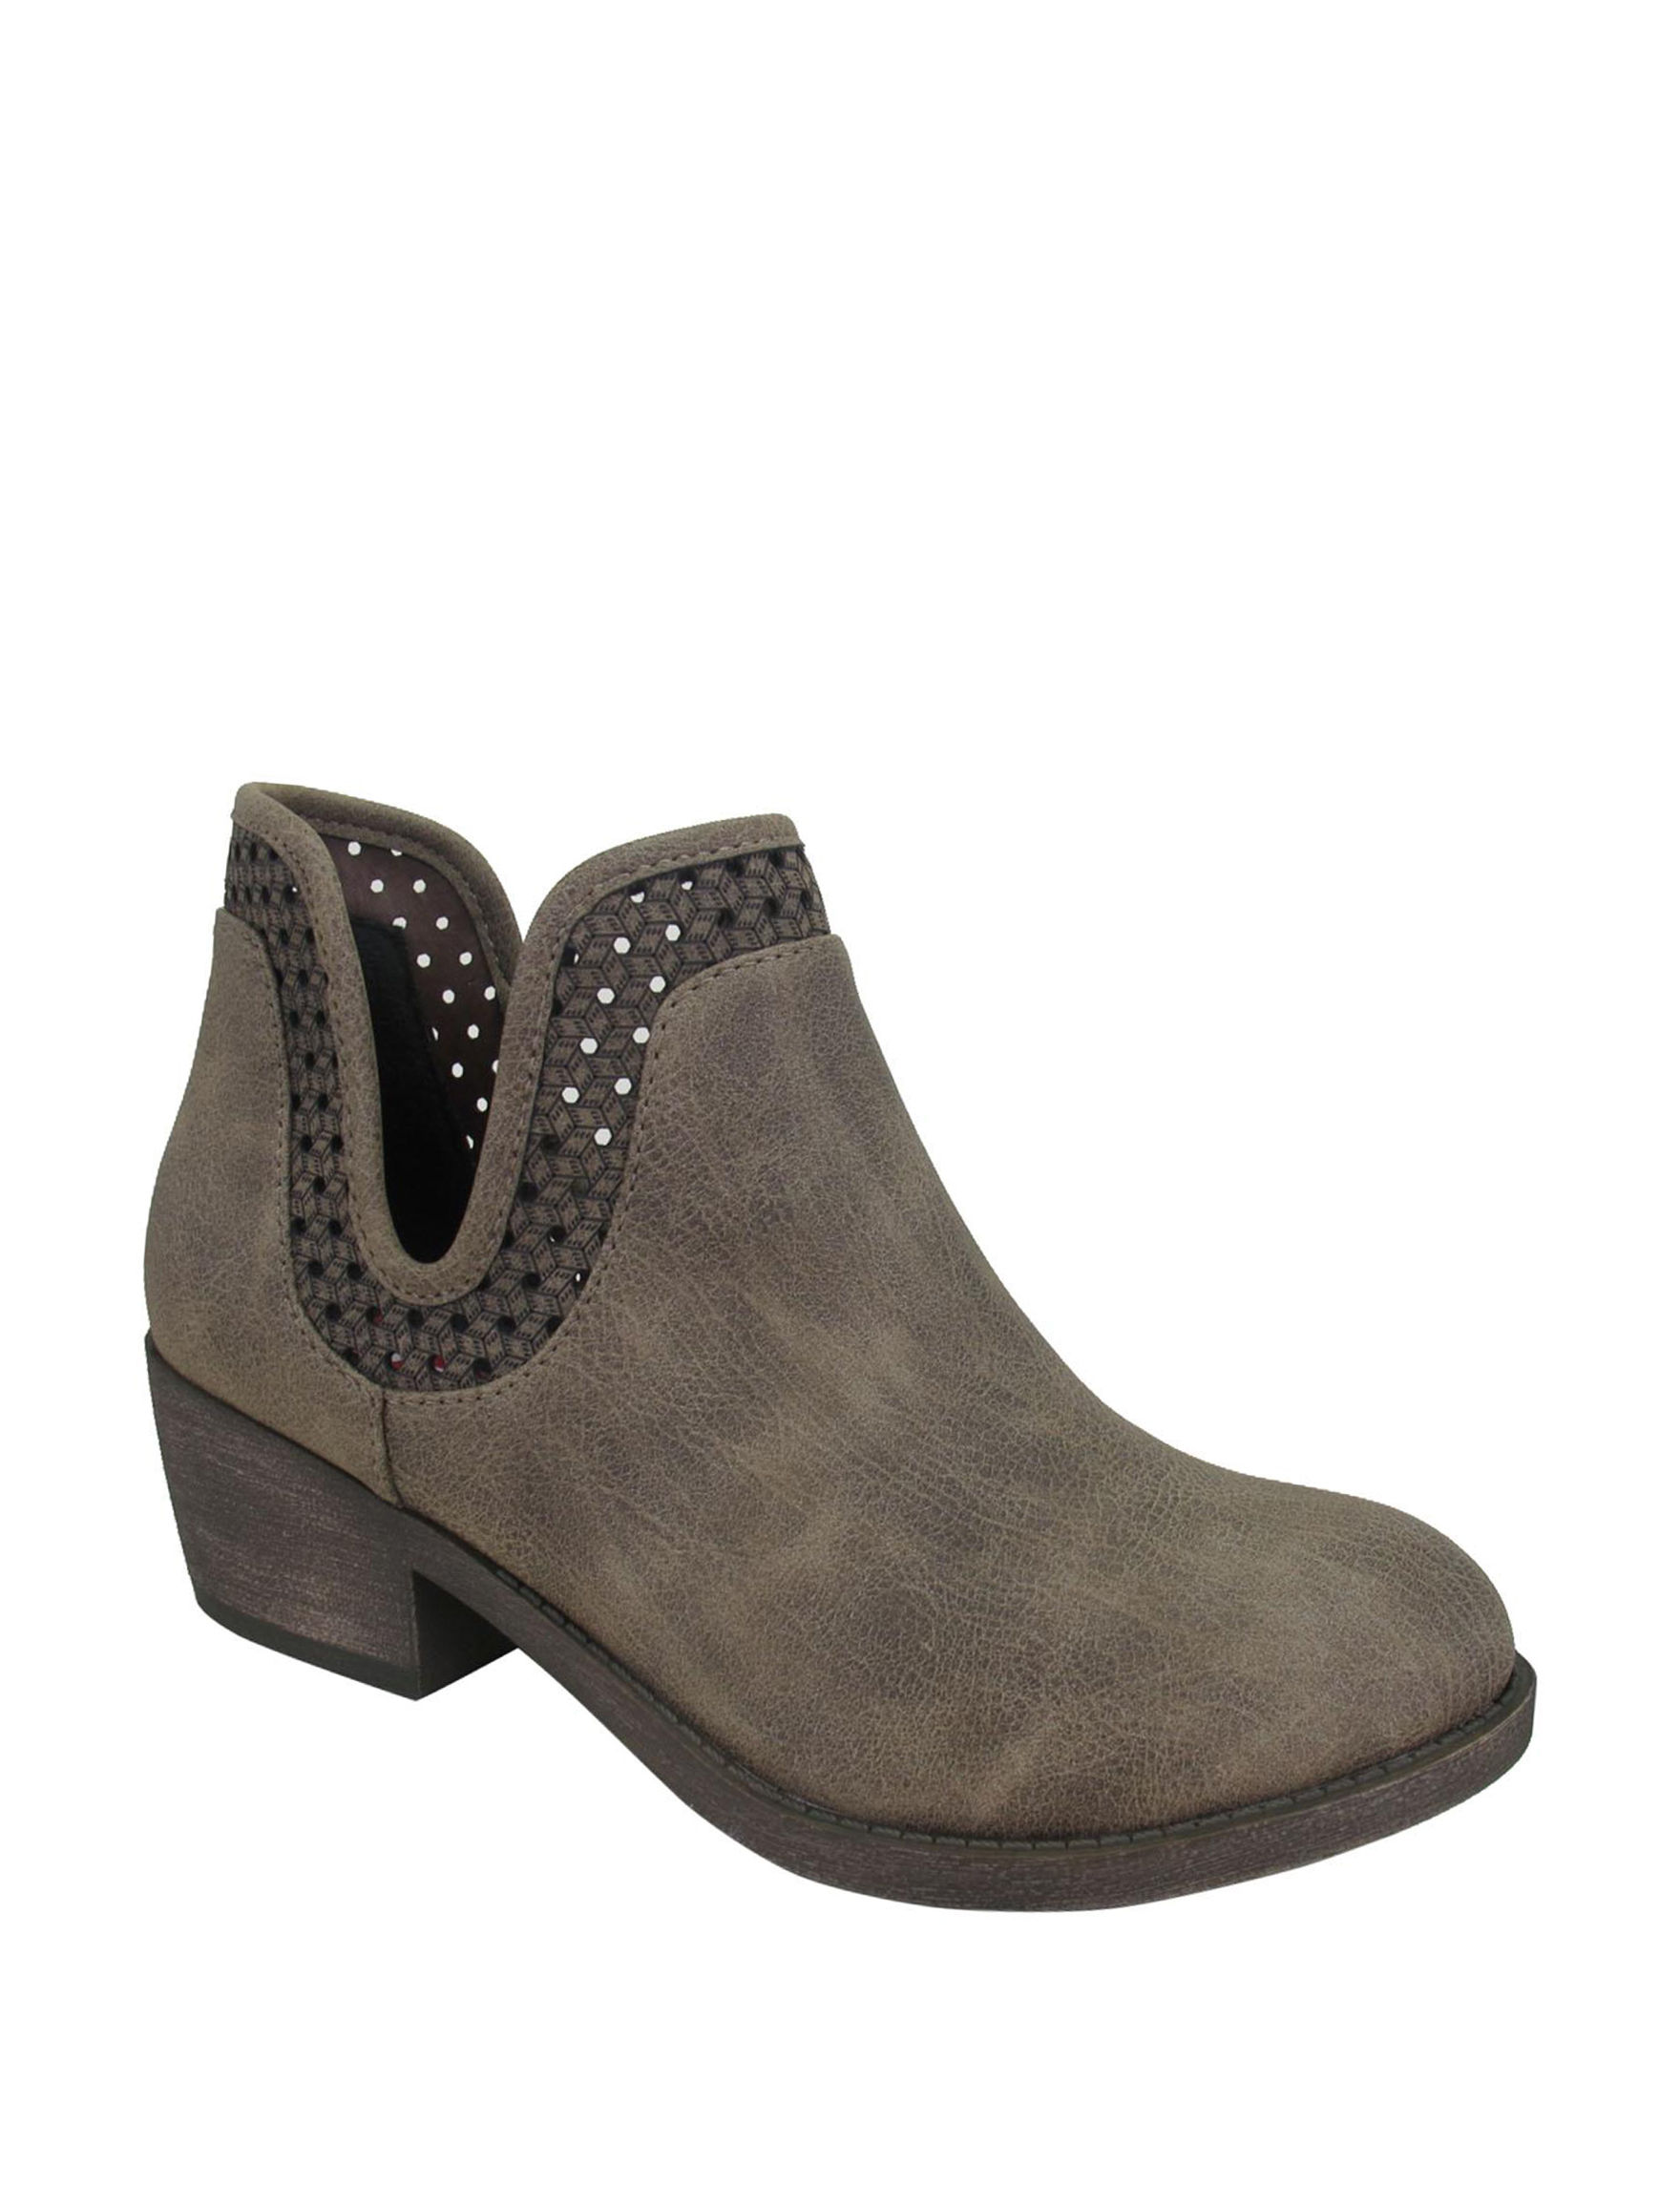 Jellypop Brown Ankle Boots & Booties